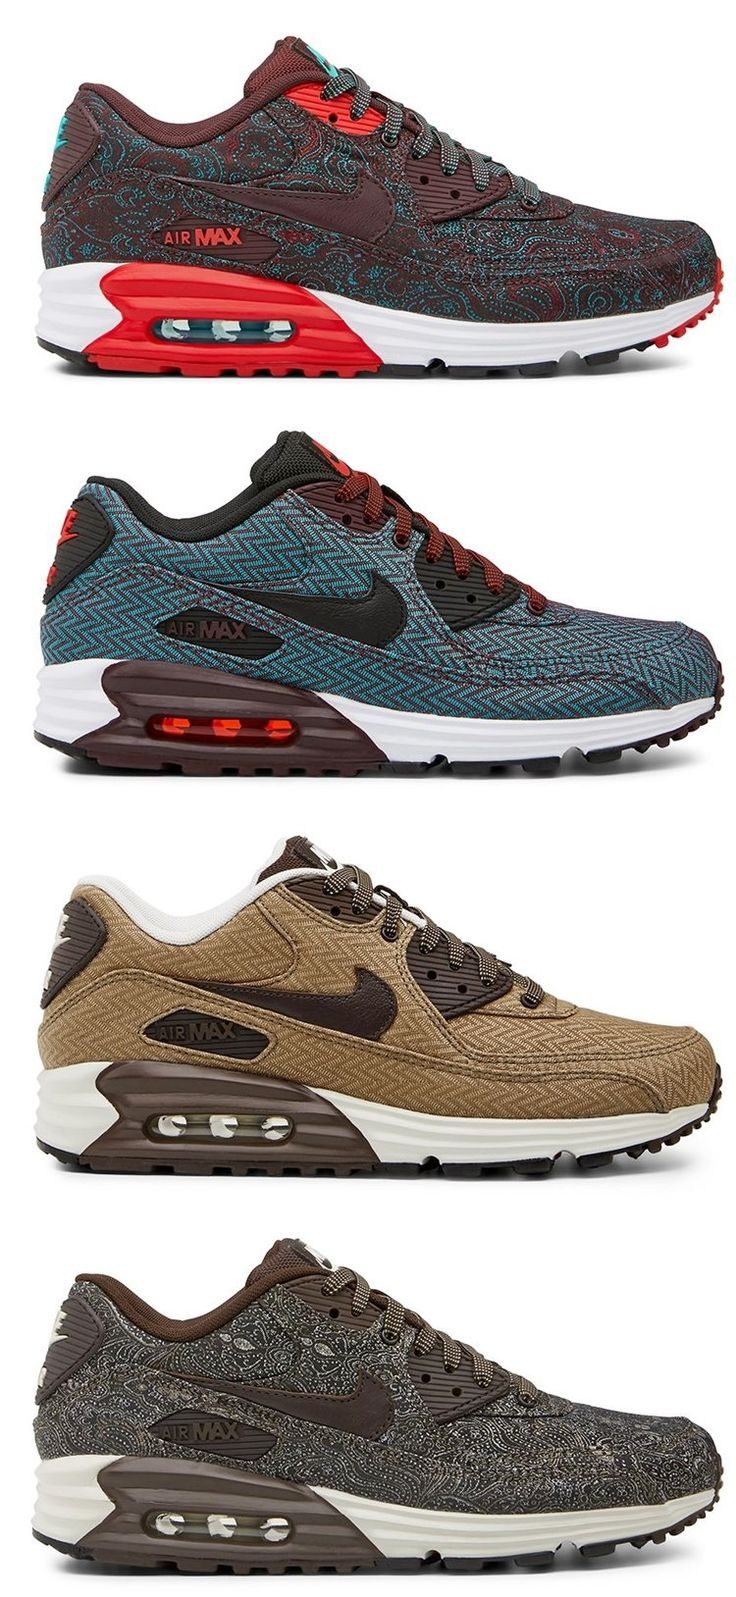 Nike Air Max 90 Lunar - Suit & Tie Edition. My kind of athletic shoe! http://www.gumtree.com/p/womens-trainers/airmax-nike-90-brand-new-original-ltd-s-%C2%A350-/1100557116